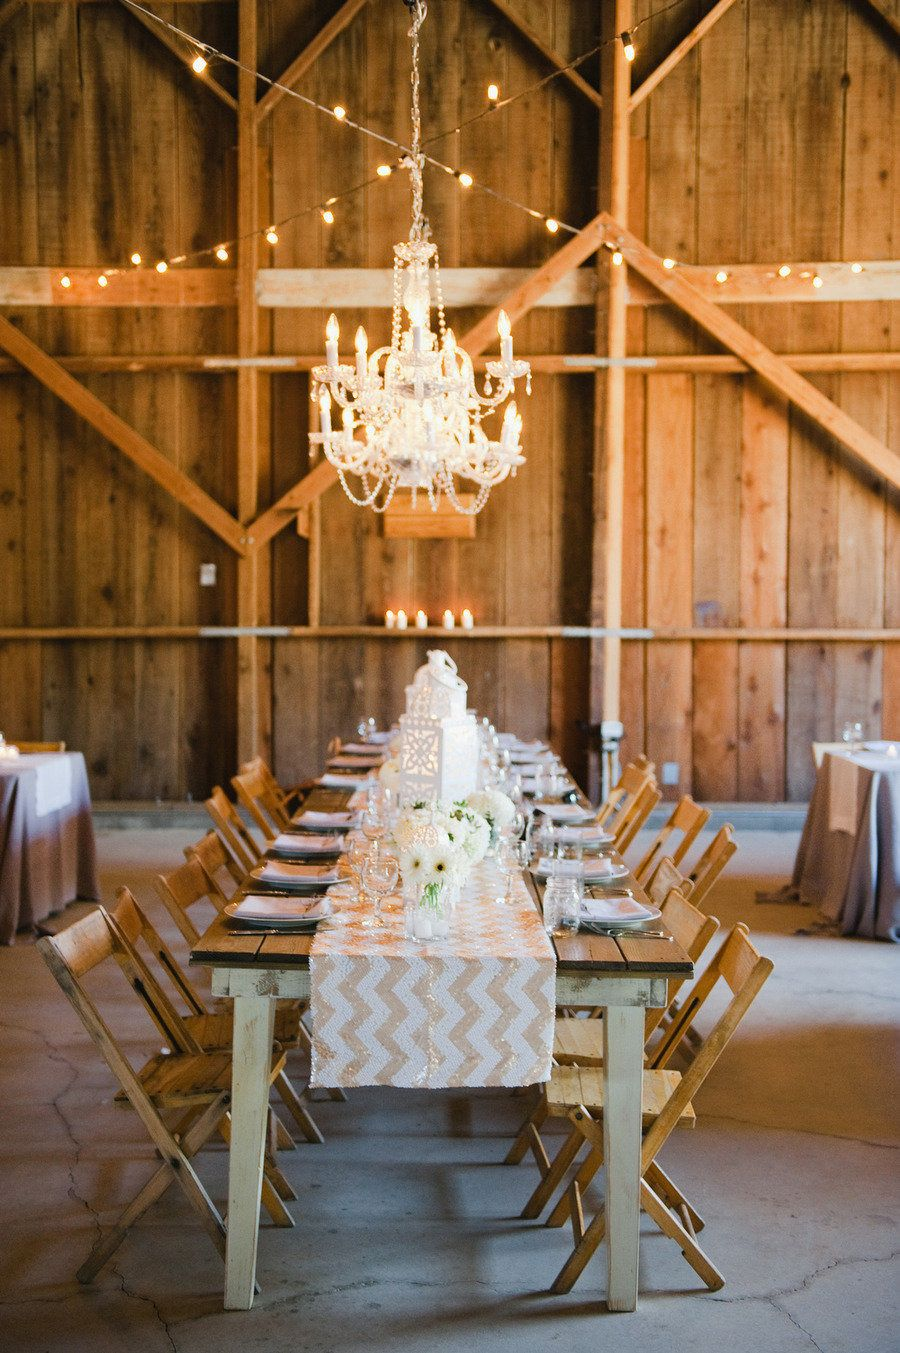 California wine country wedding from onelove photography